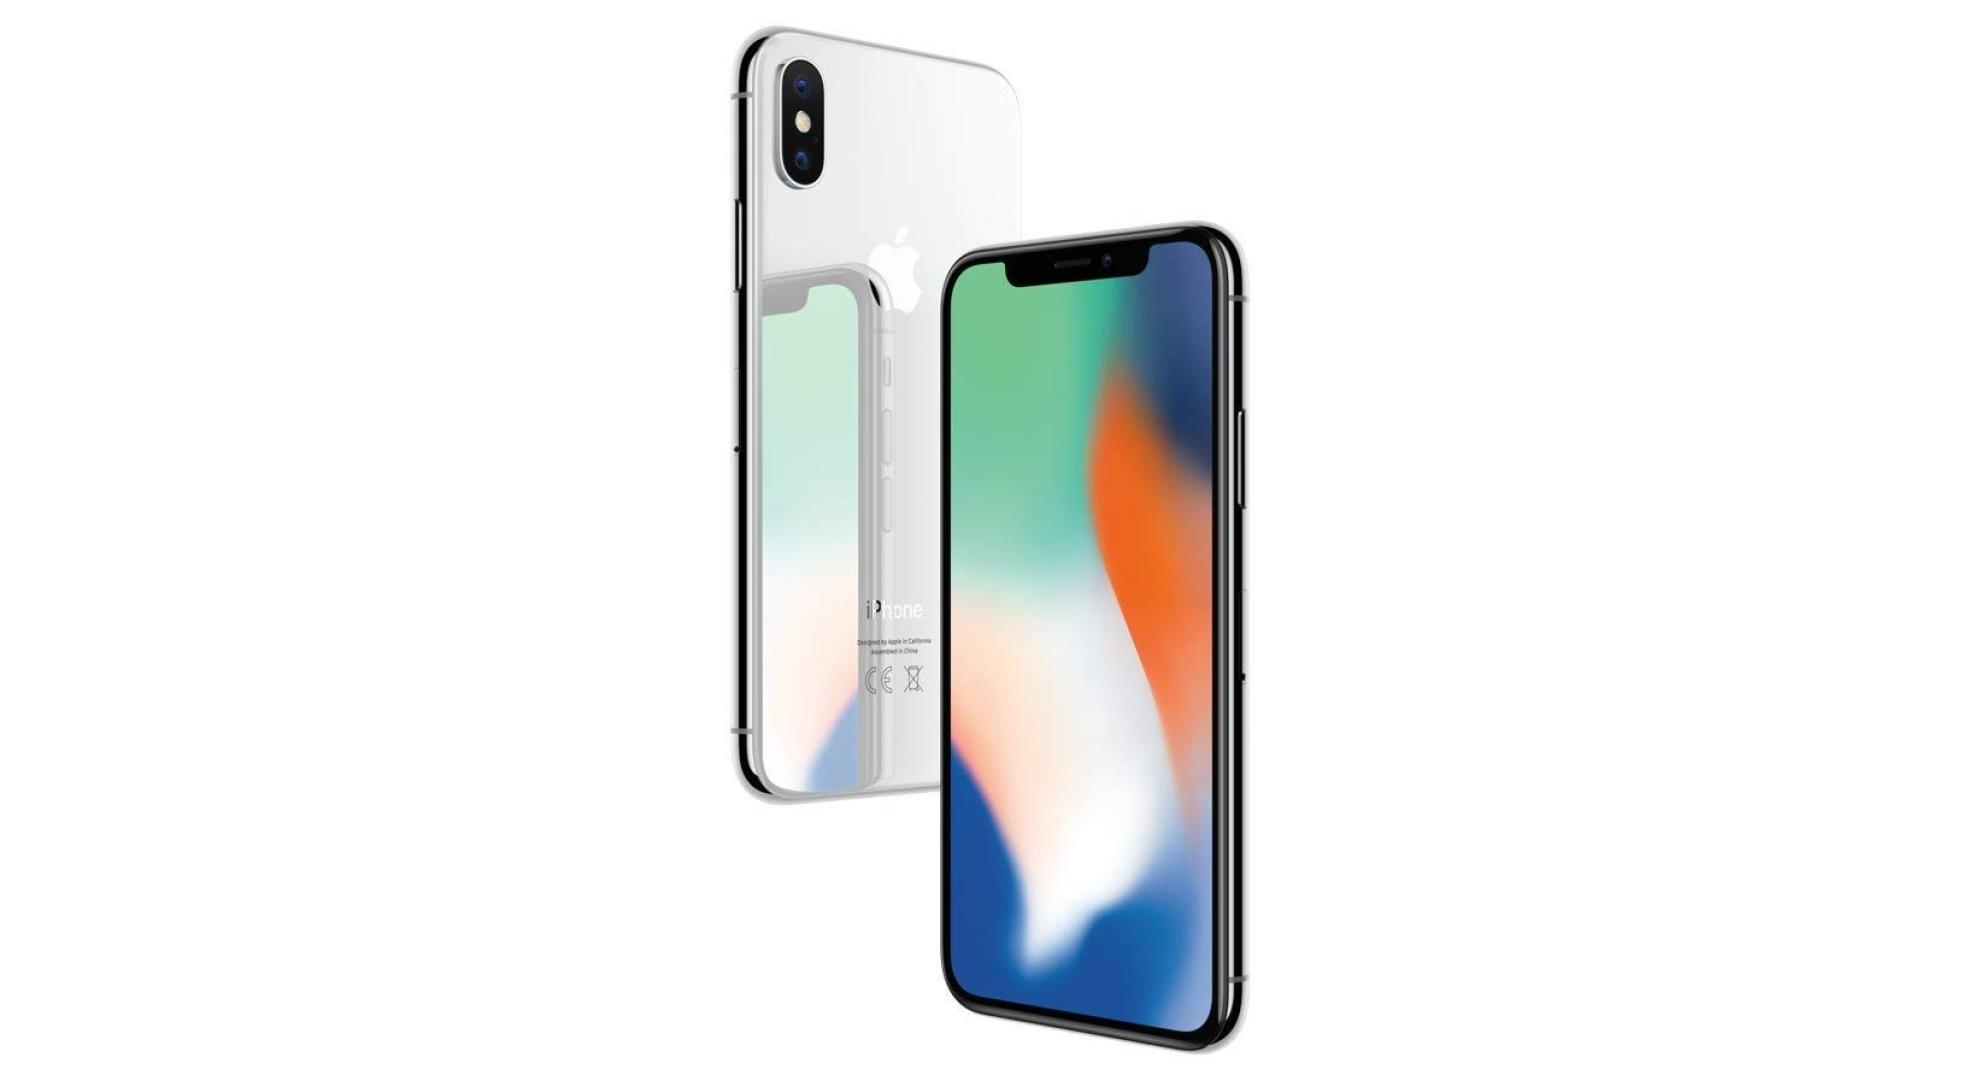 🔥 Bon plan : l'Apple iPhone X est disponible à 869 euros sur Amazon